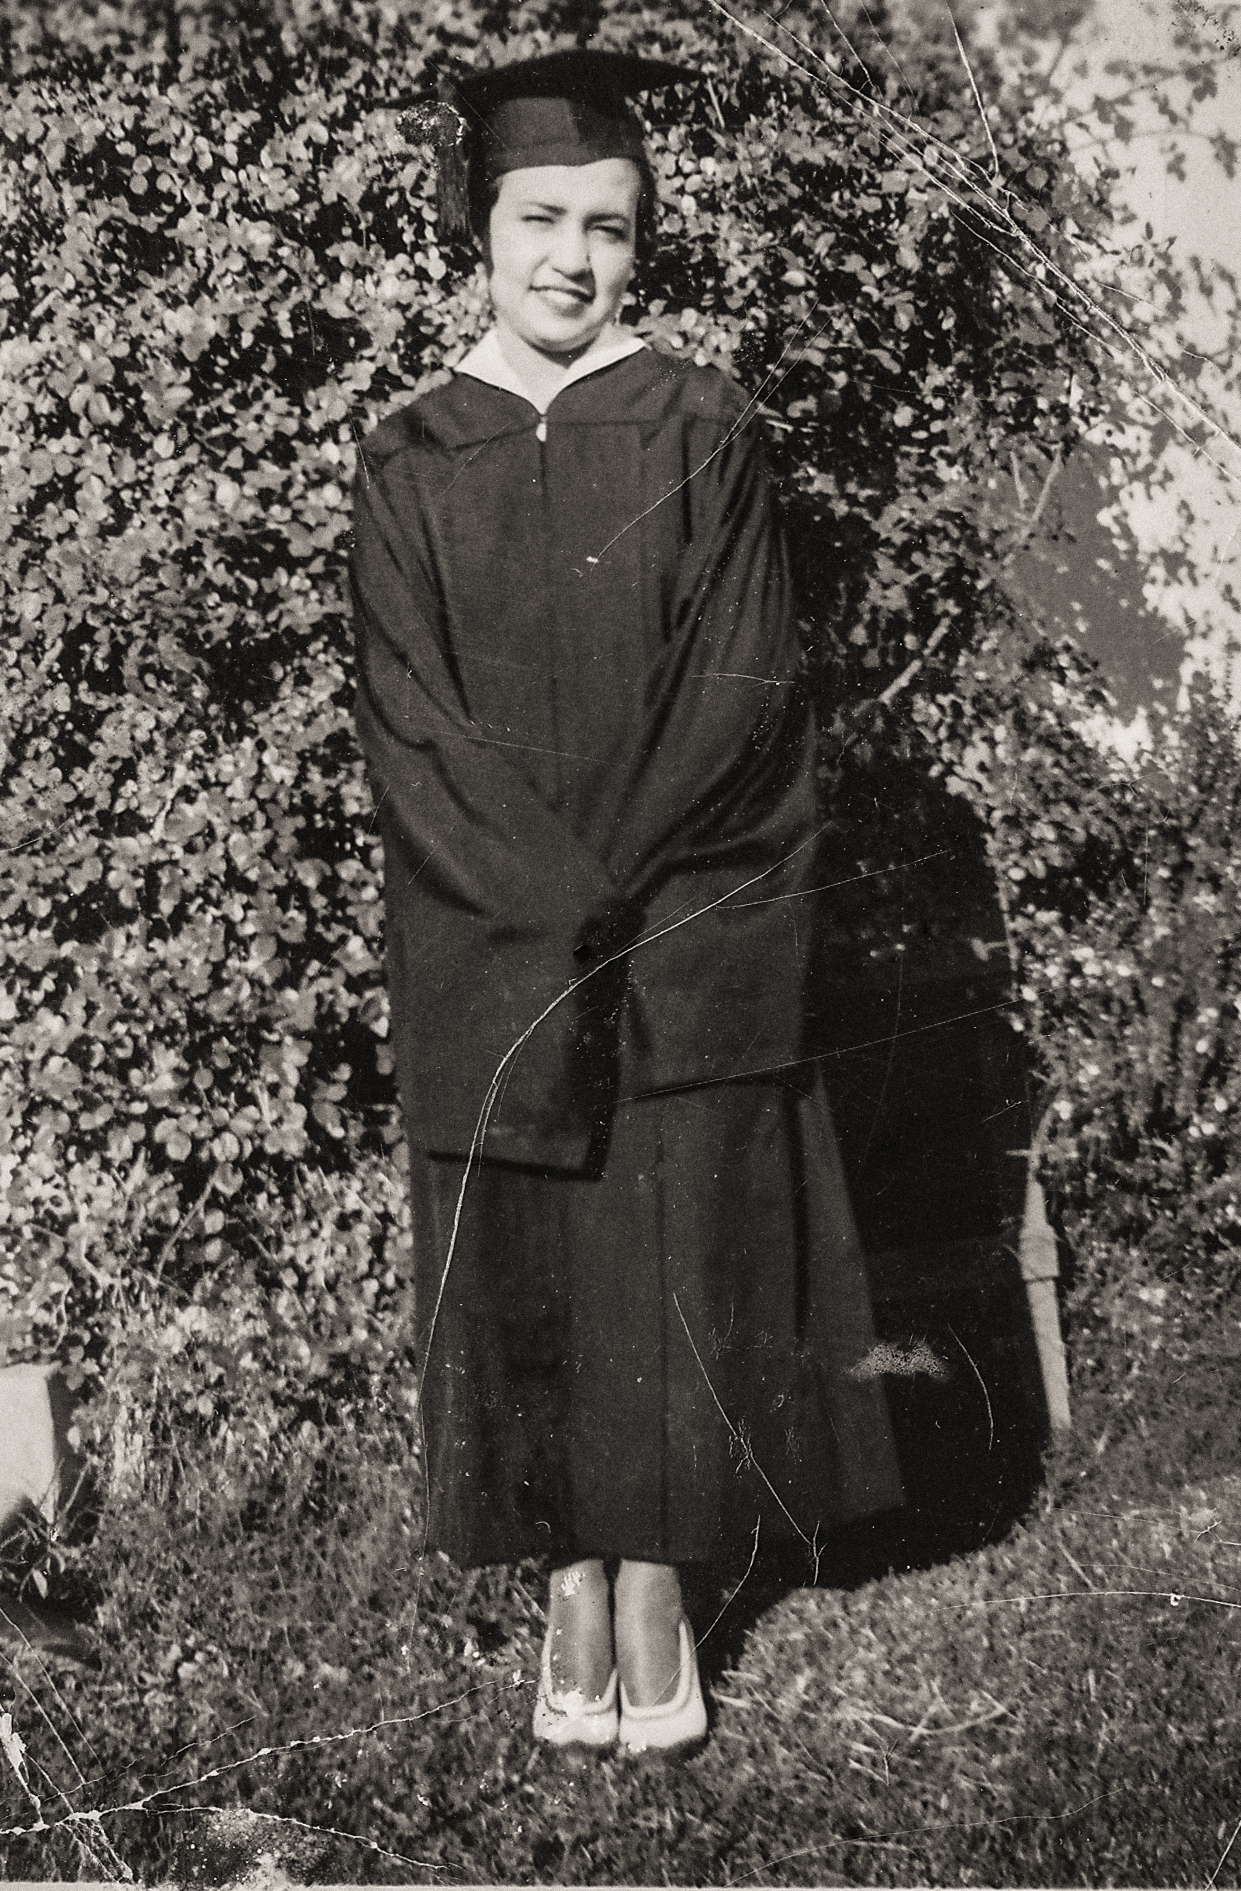 Sort ID: 1935-01 Image ID: C101 (est) Year: 1935. Photo content: Mother. Location of photo: Graduation from Arizona Teachers College in Tempe.